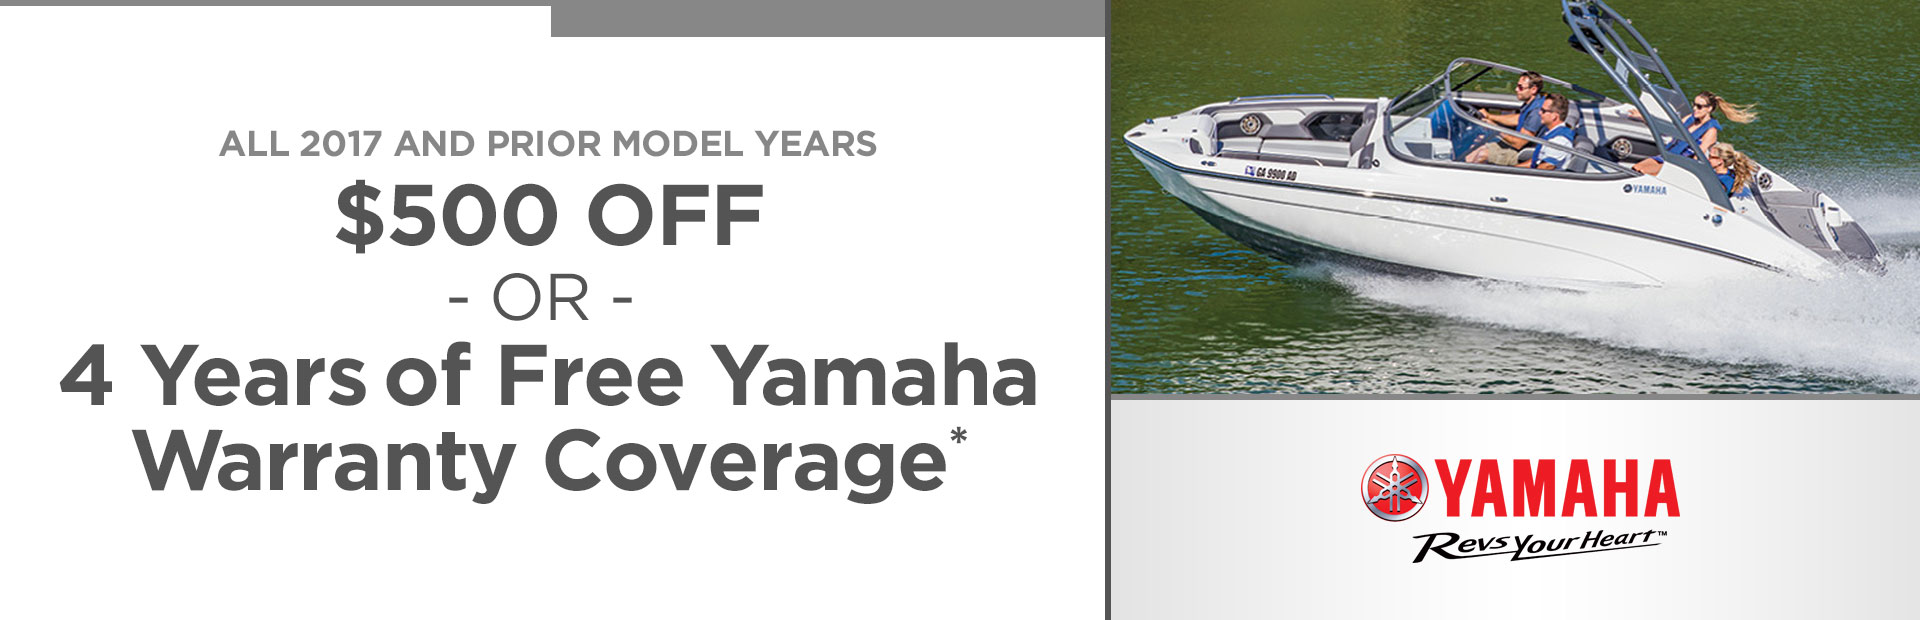 $500 Off or 4 Years of Yamaha Warranty Coverage